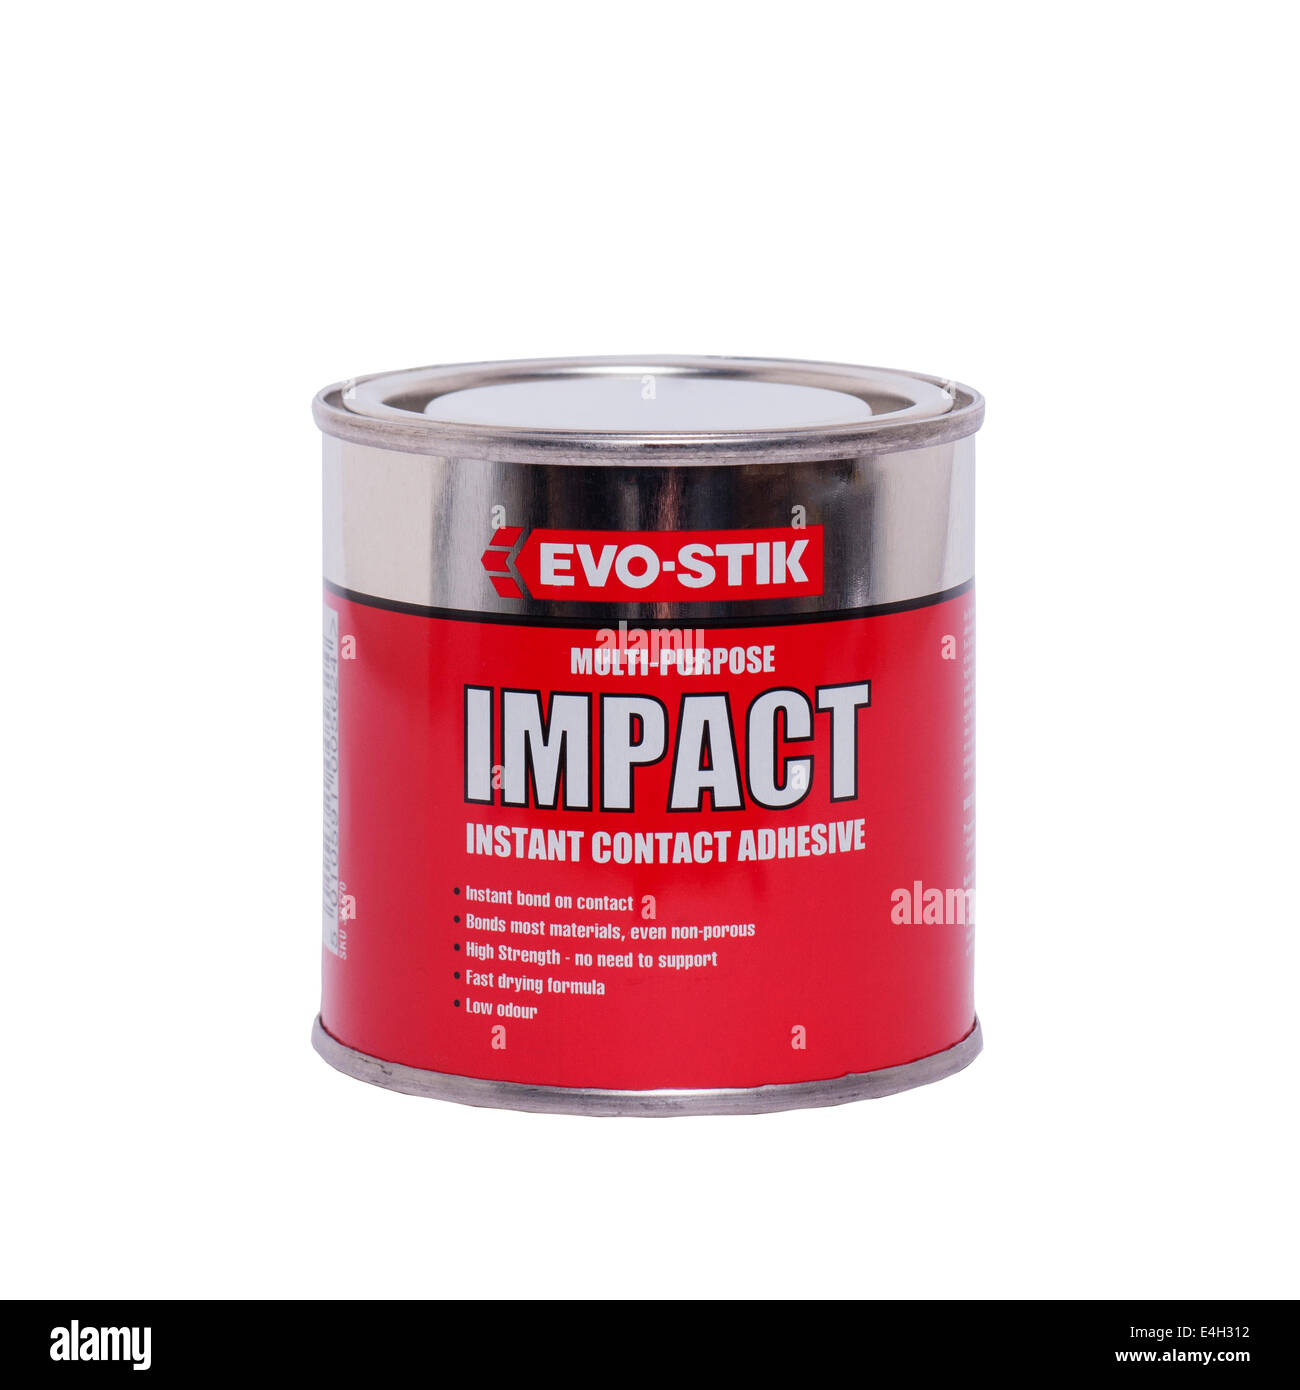 a tin of evo stik multi purpose impact instant contact adhesive a tin of evo stik multi purpose impact instant contact adhesive glue on a white background